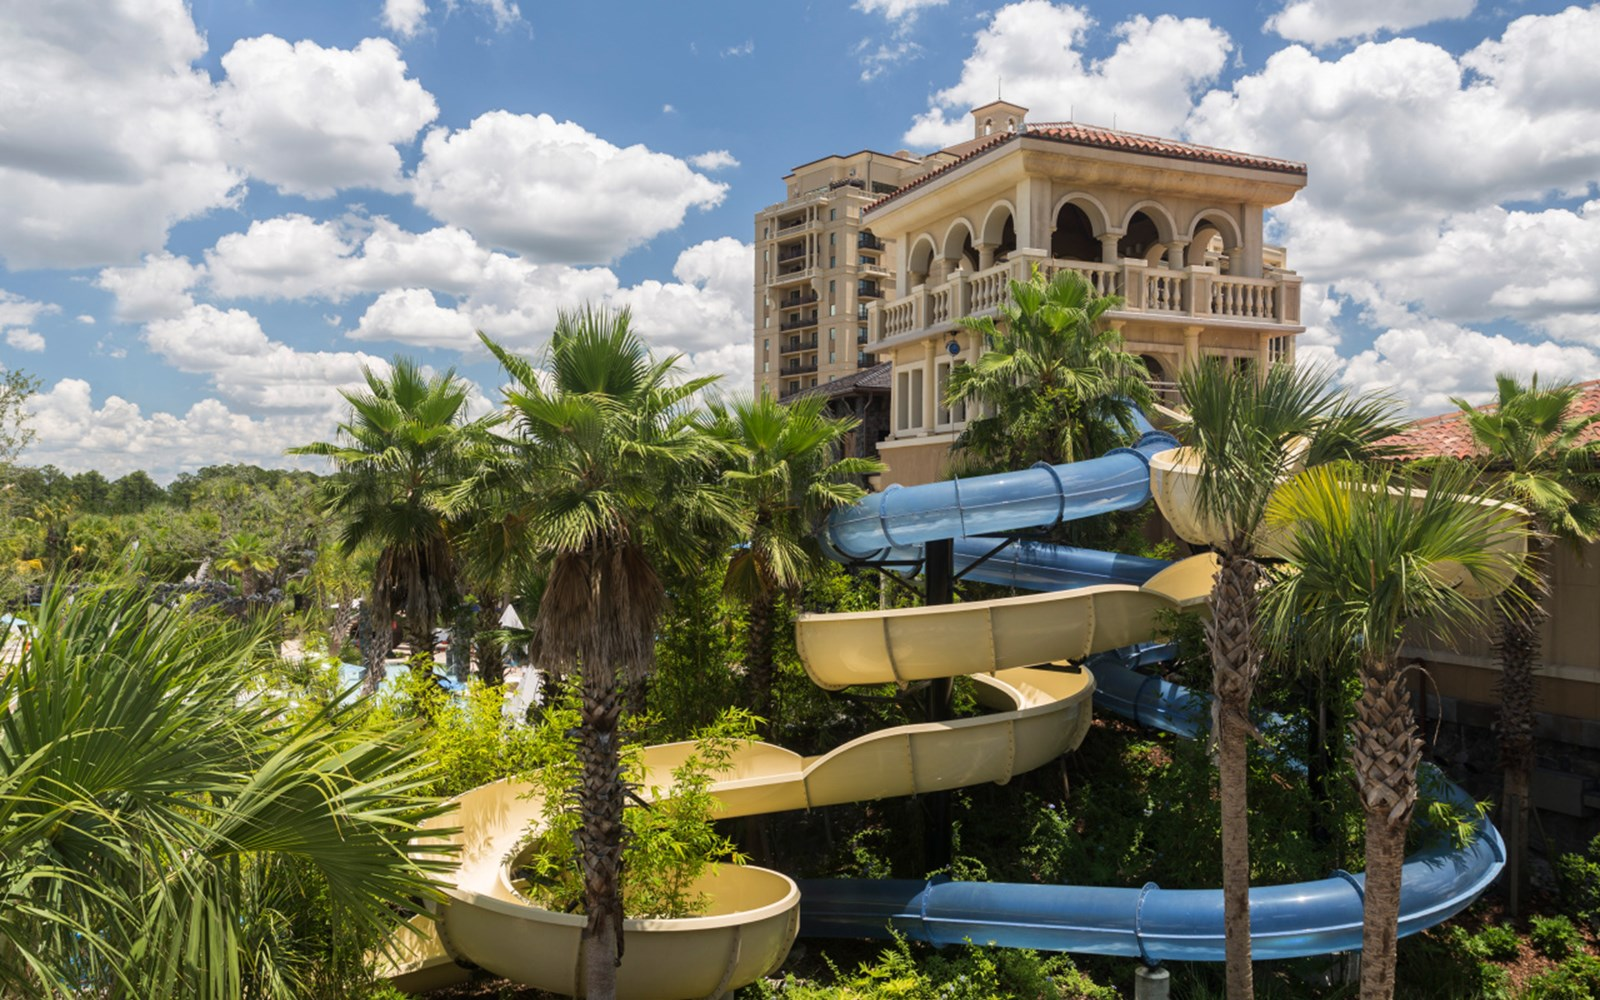 The Drop - Water Slides